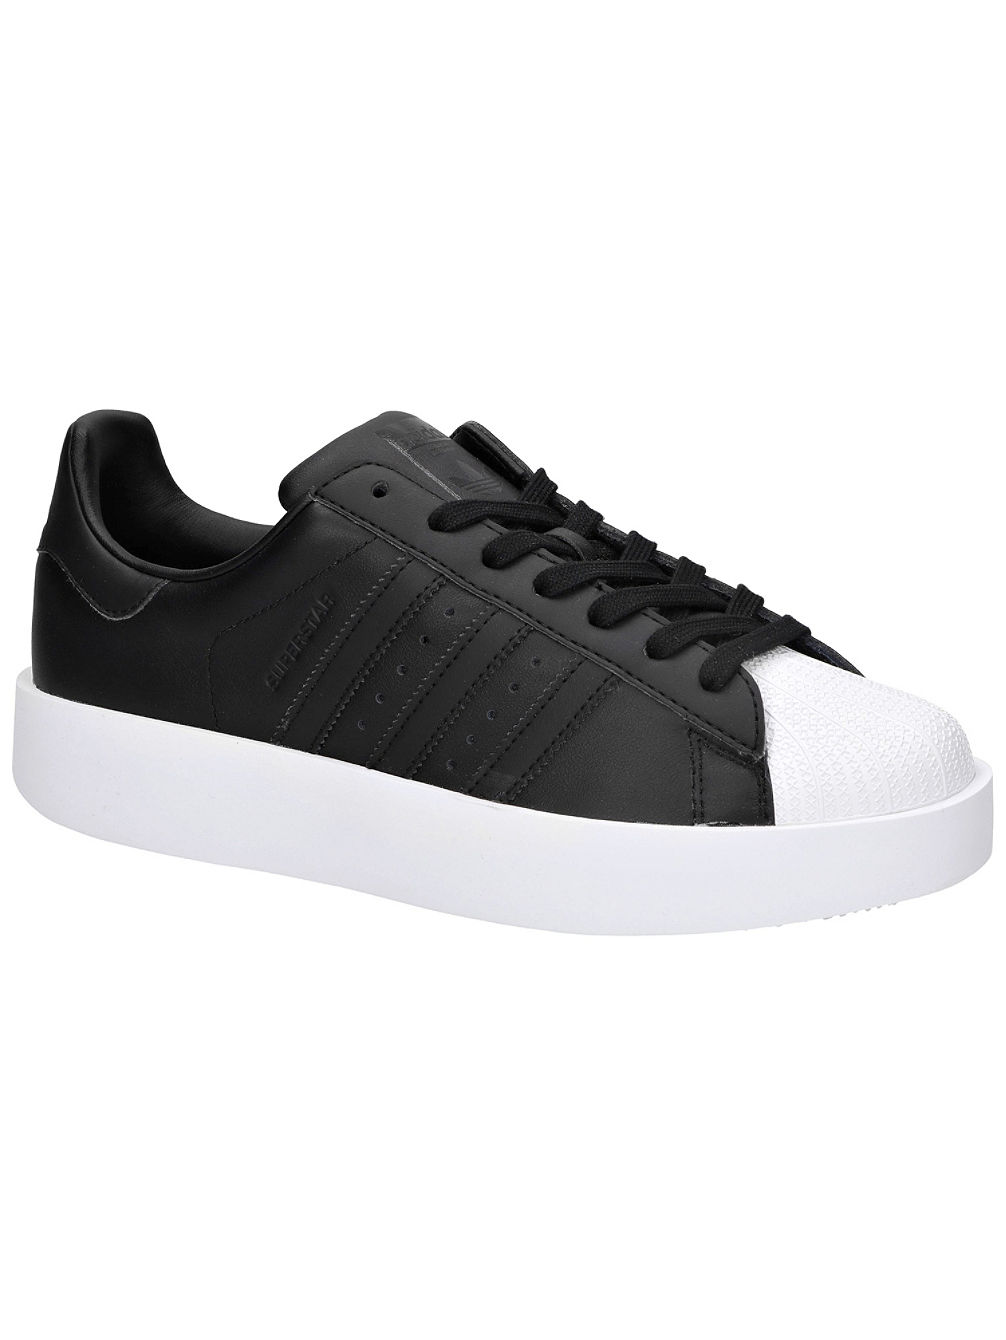 a92ae8d3ae8 Compra adidas Originals Superstar Bold W Sneakers Women online na Blue  Tomato